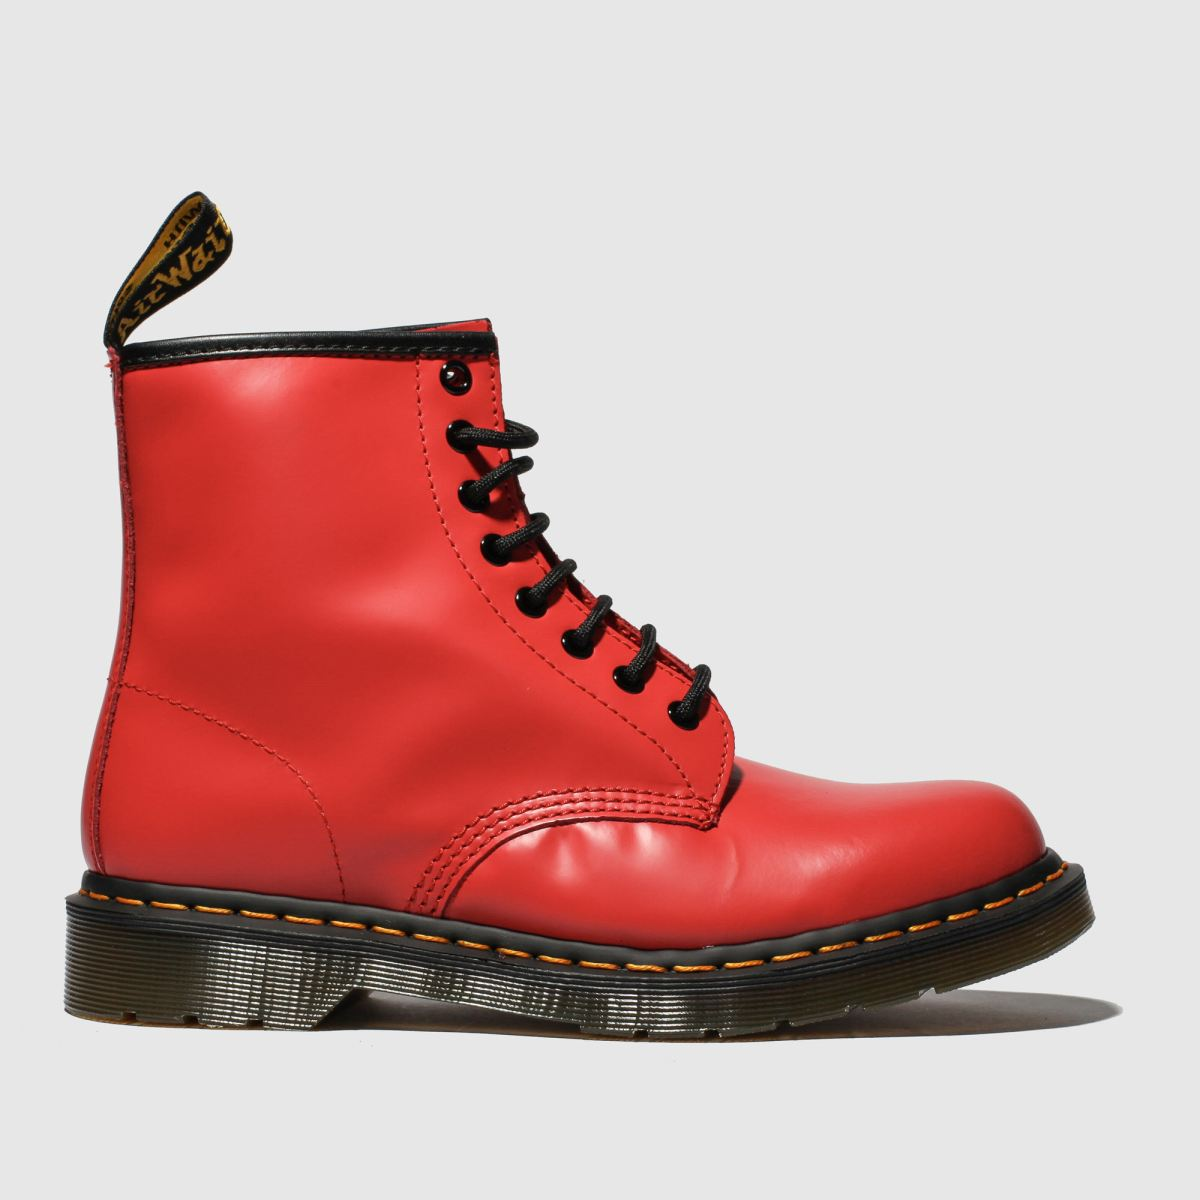 Dr Martens Red 1460 8 Eye Boots